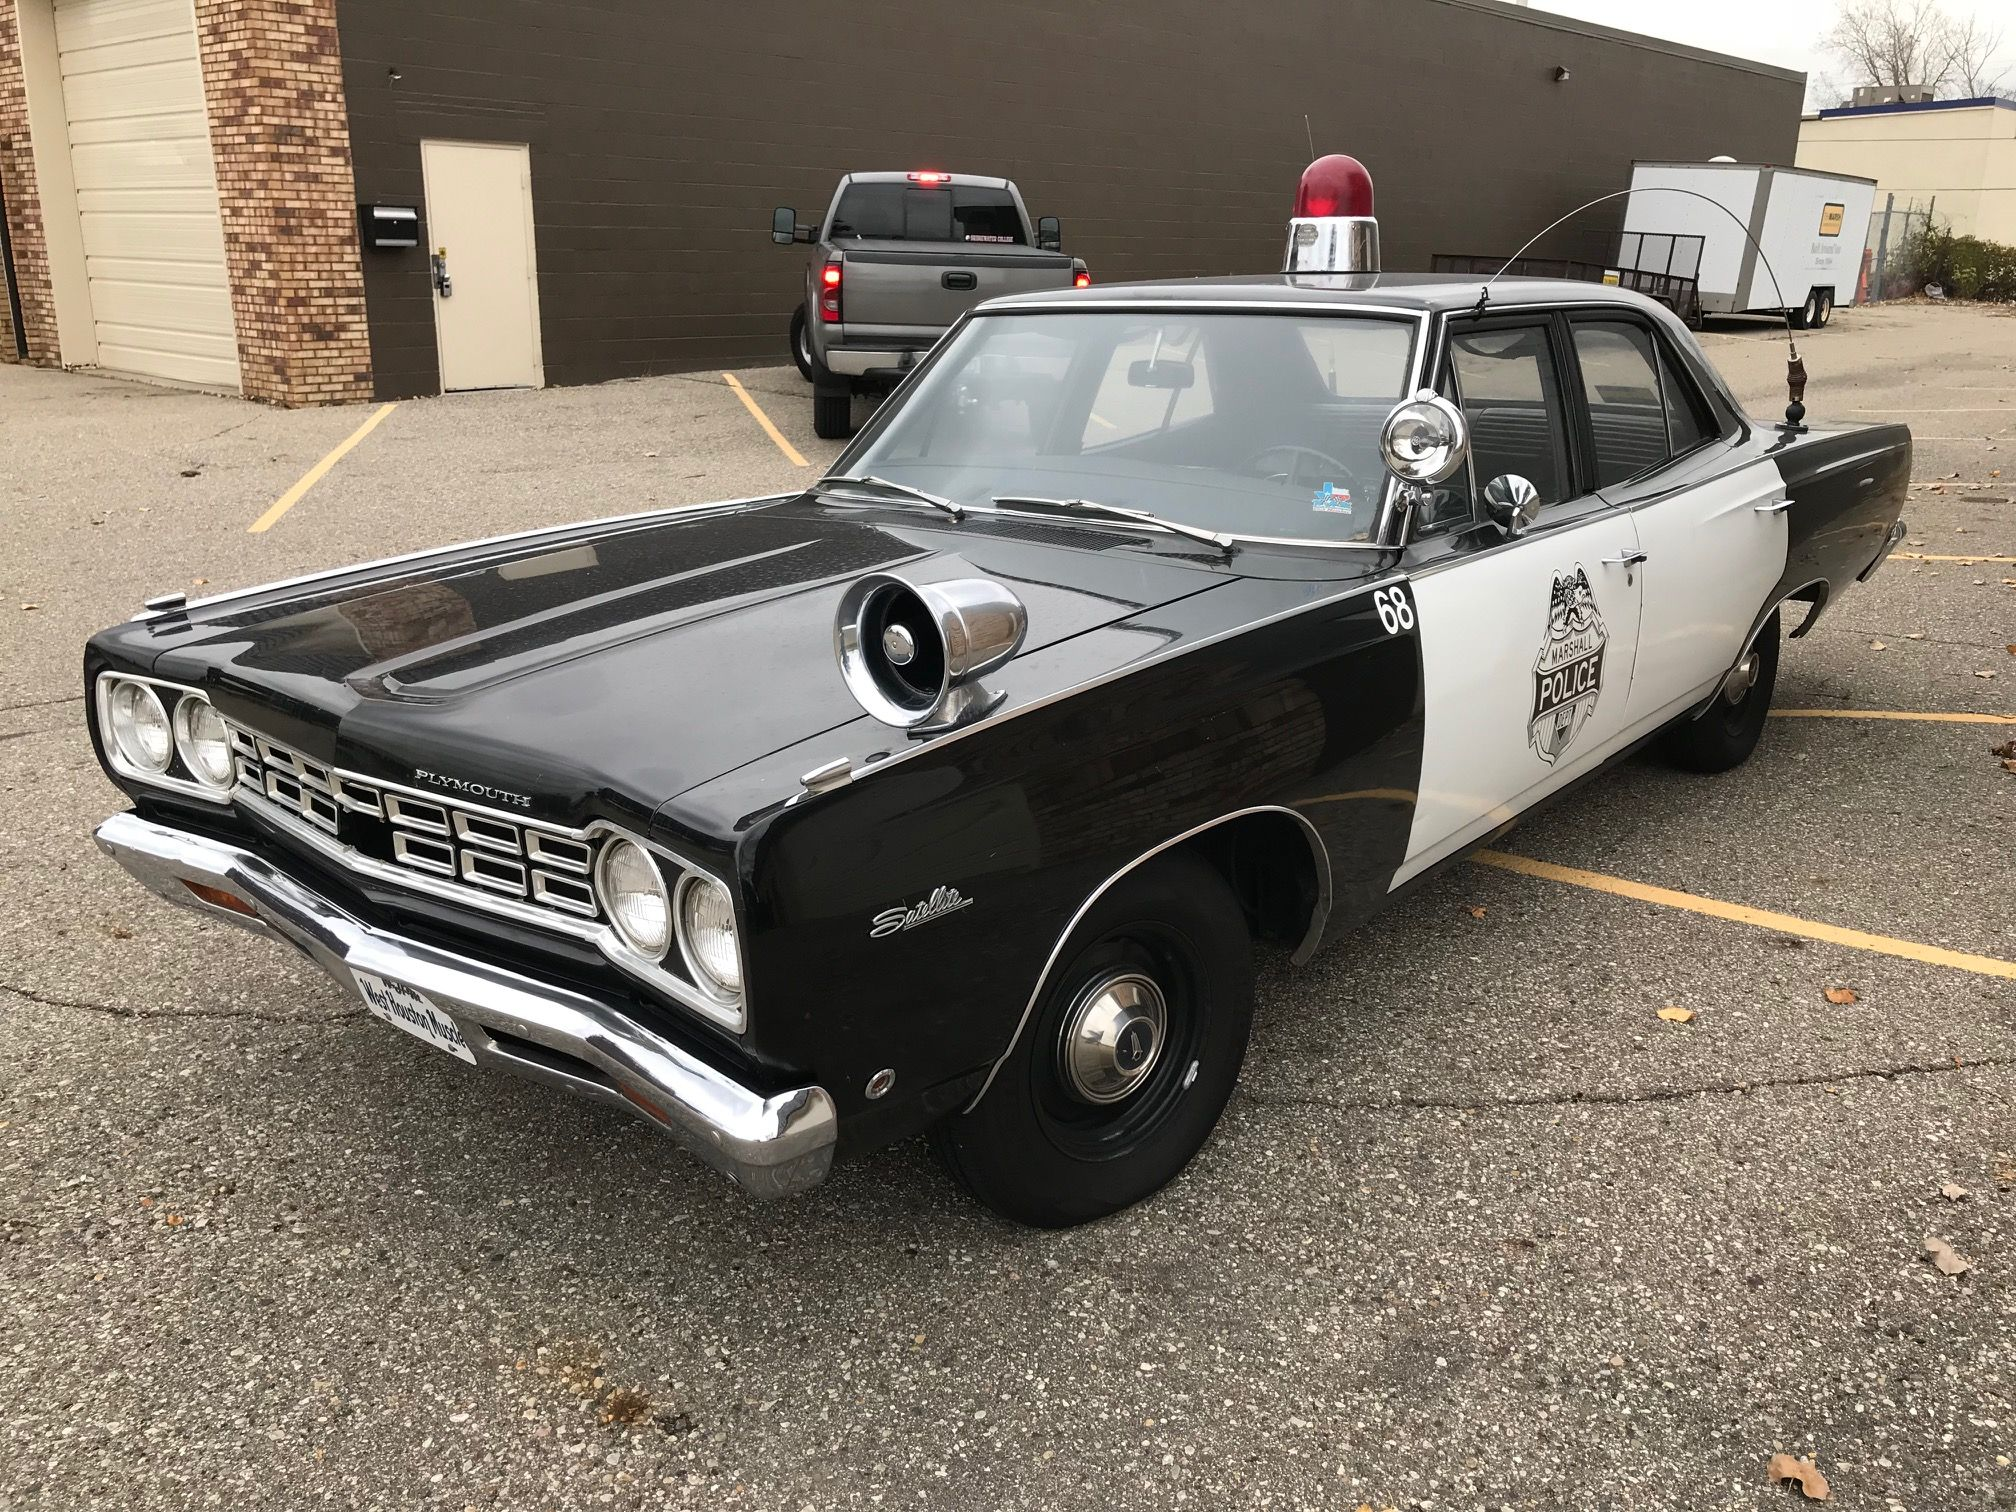 Bid For The Chance To Own A No Reserve 1968 Plymouth Satellite At 1953 Savoy Wagon Auction With